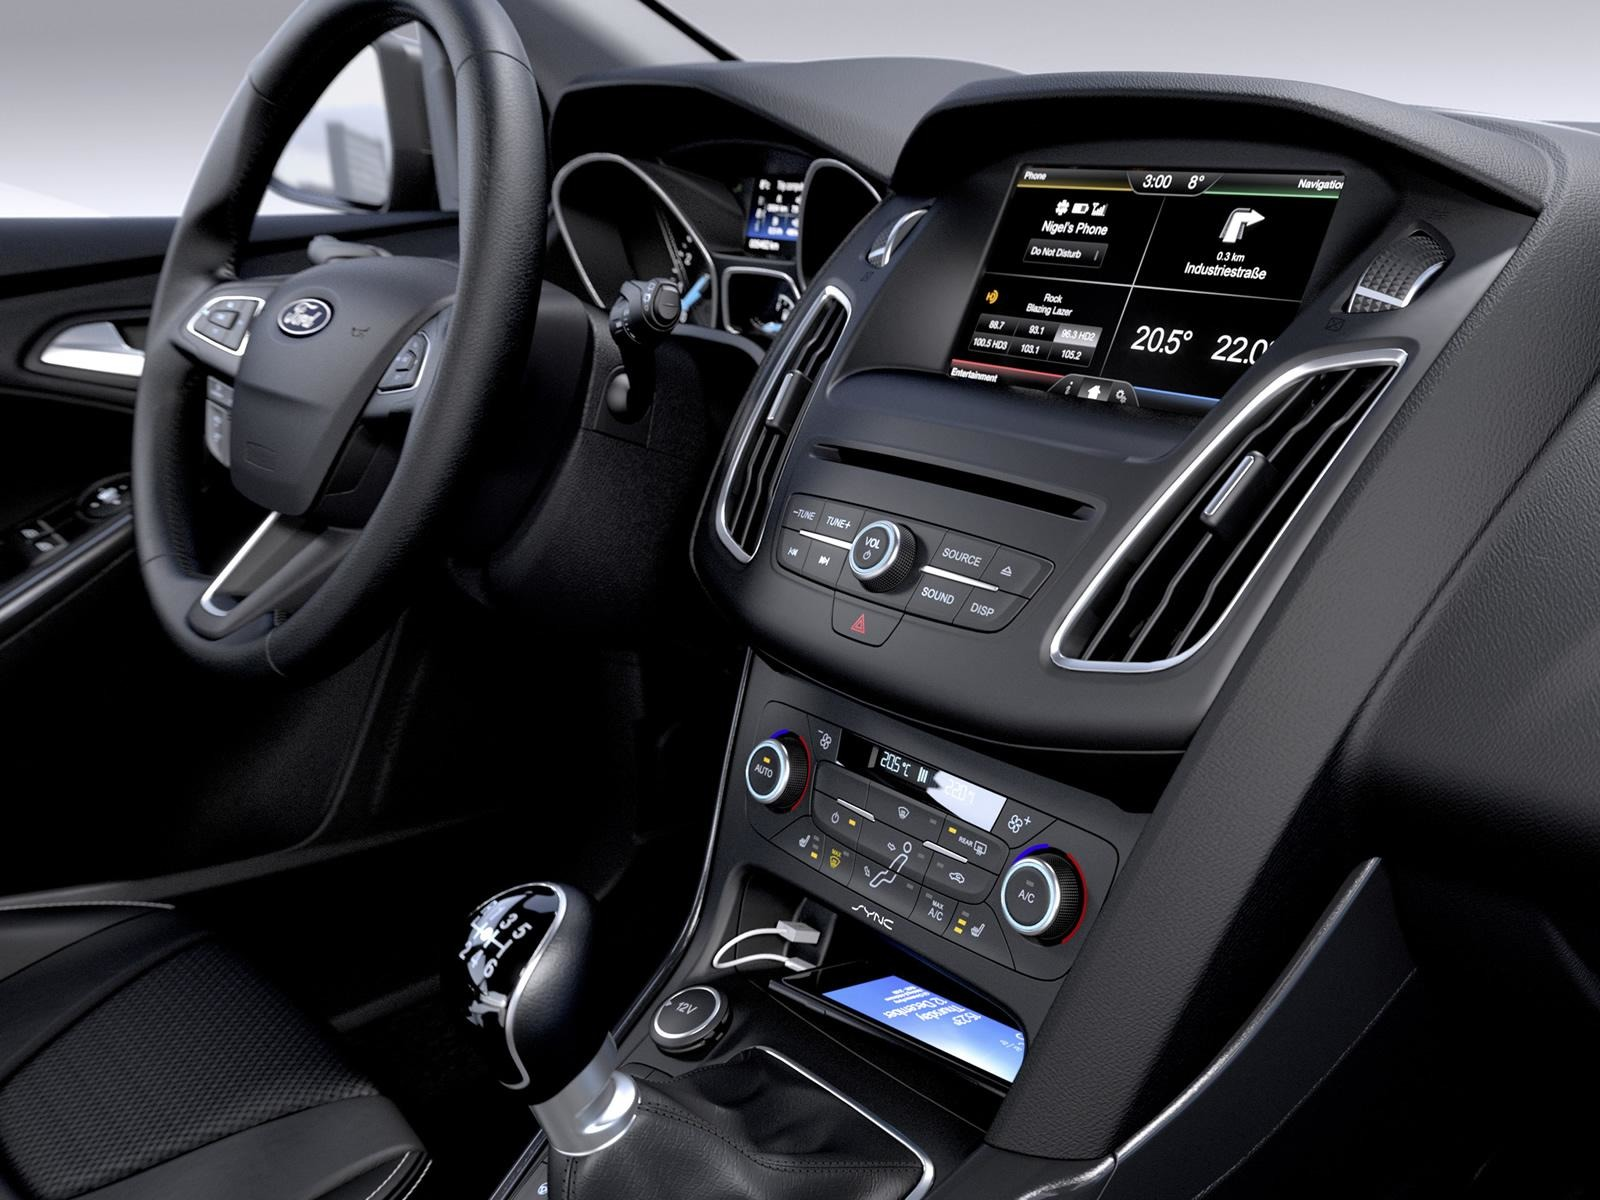 Ford S Most Fuel Efficient Focus Will Be Manual Only